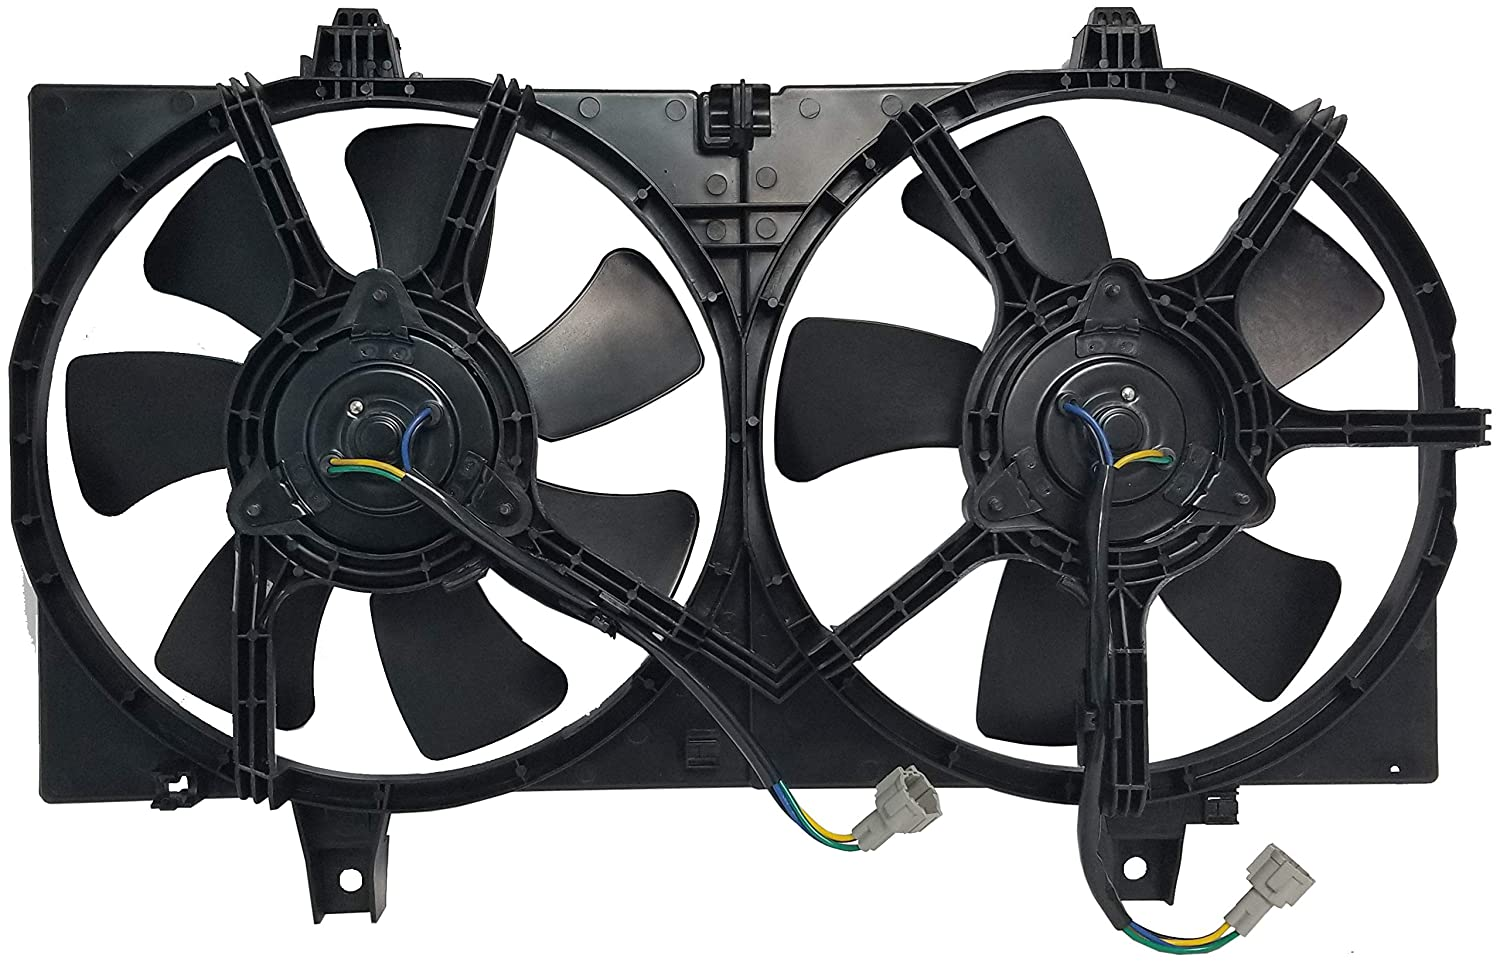 Sunbelt Radiator And Condenser Fan For Nissan Sentra NI3115102 Drop in Fitment